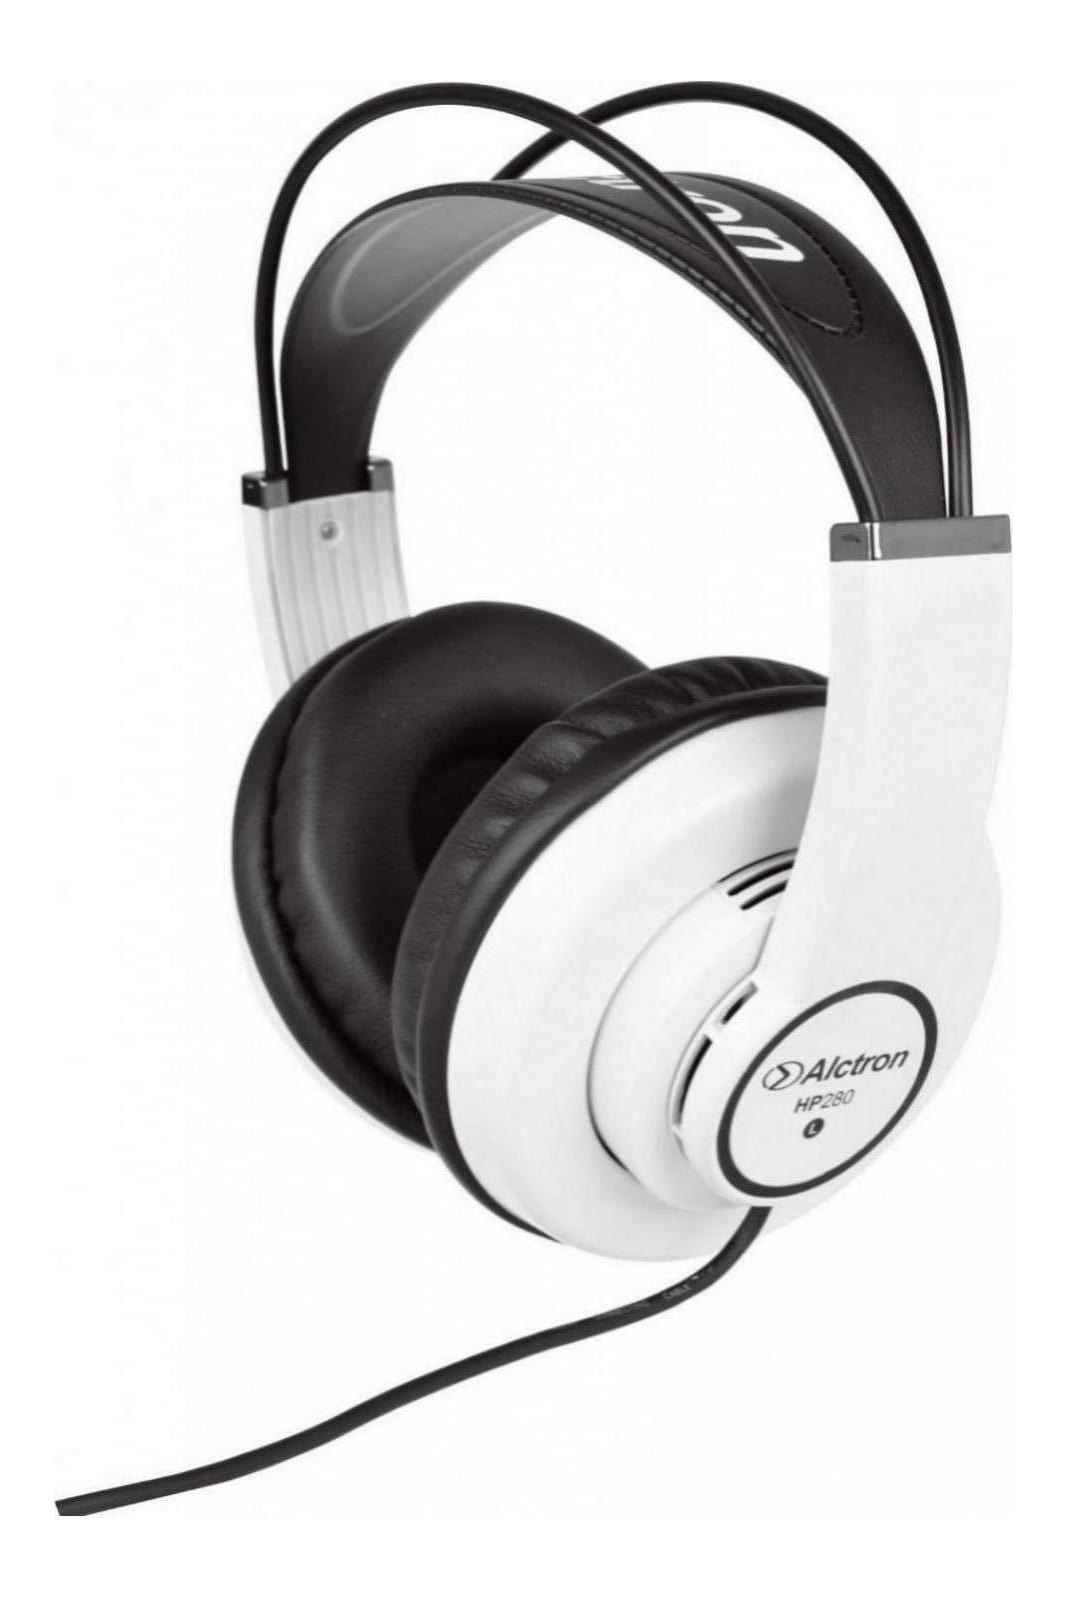 Alctron HP280 Studio Monitoring Classroom Over-Ear Headphones - White